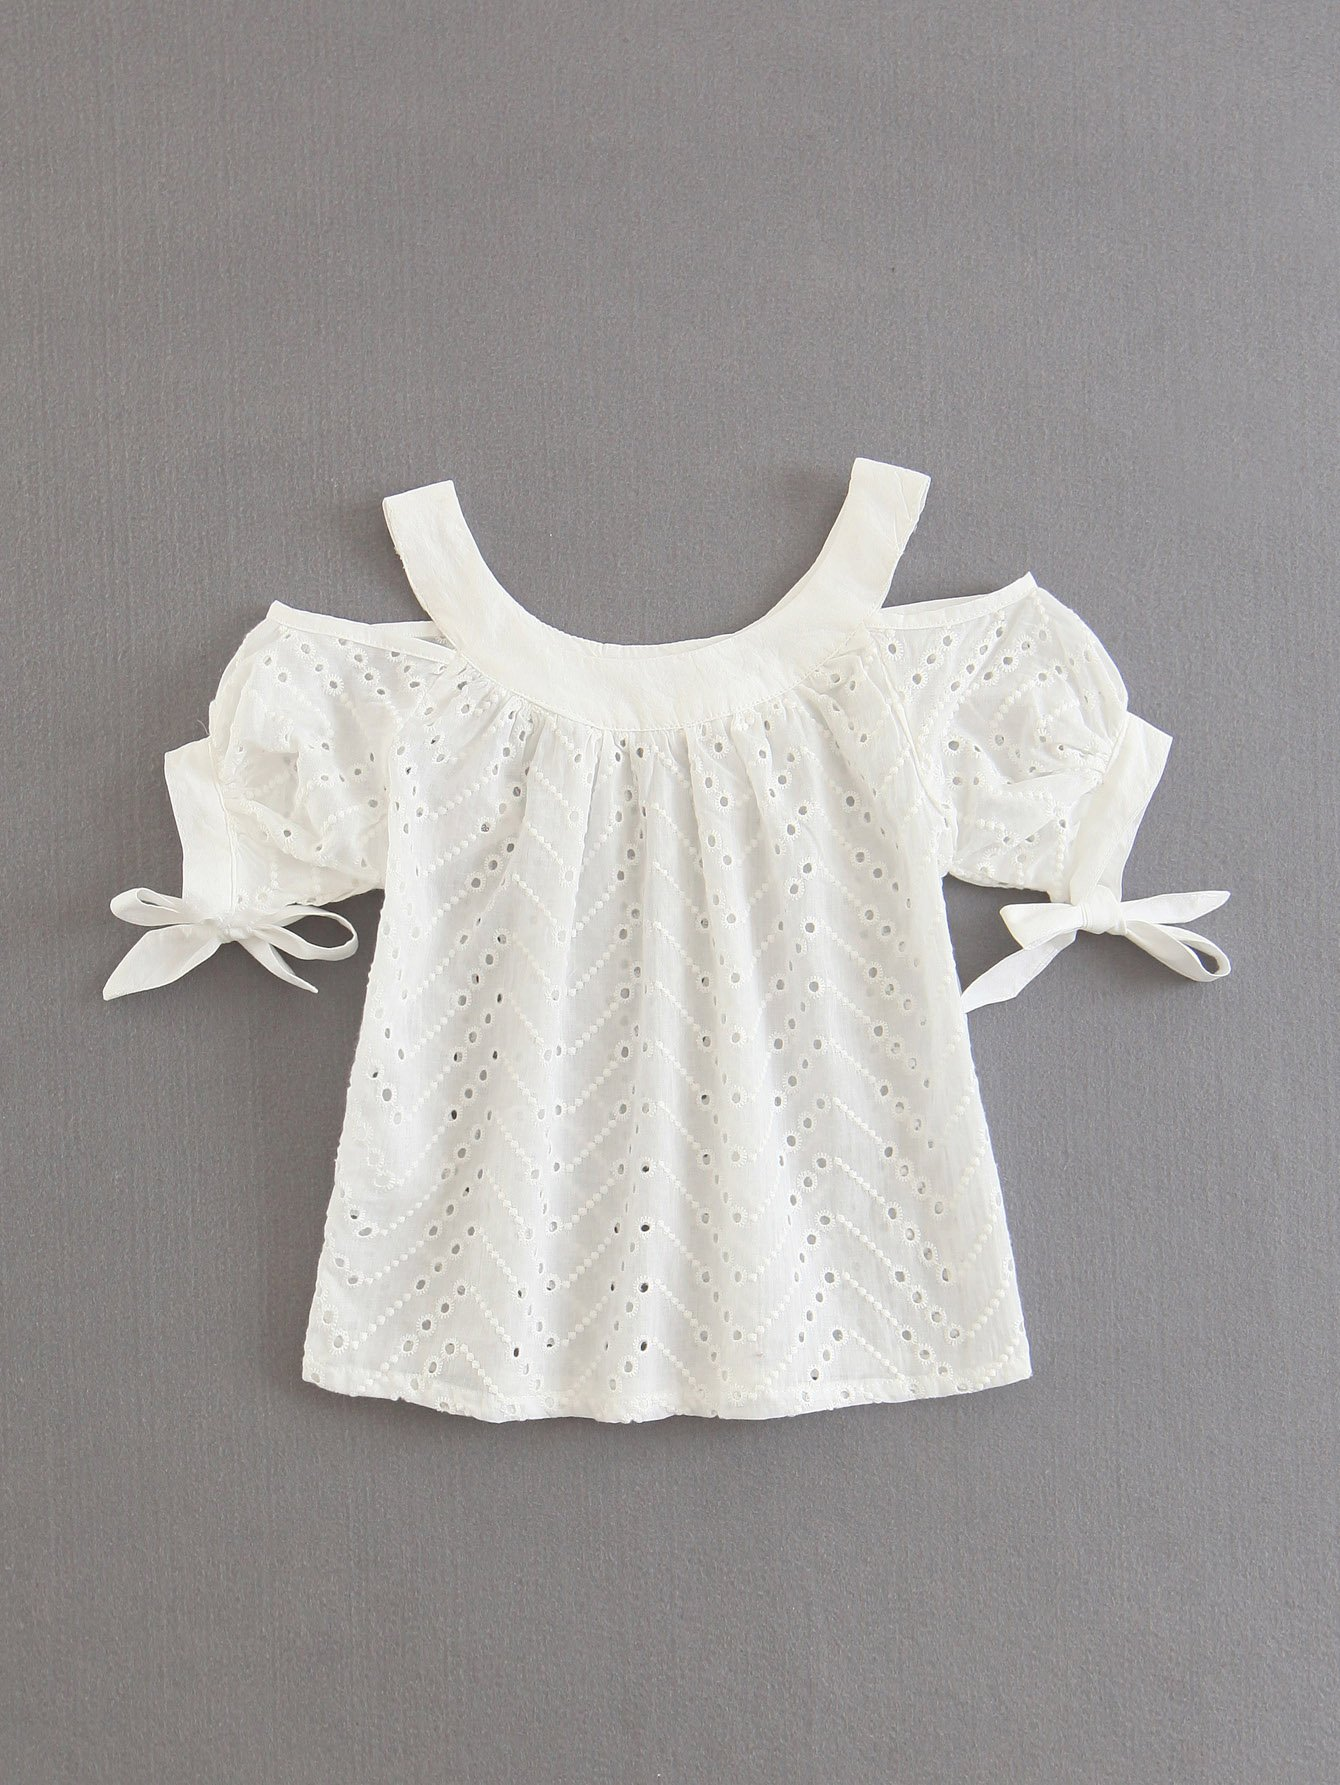 Eyelet Embroidered Open Shoulder Tie Cuff Blouse pinstriped open shoulder tie detail embroidery blouse